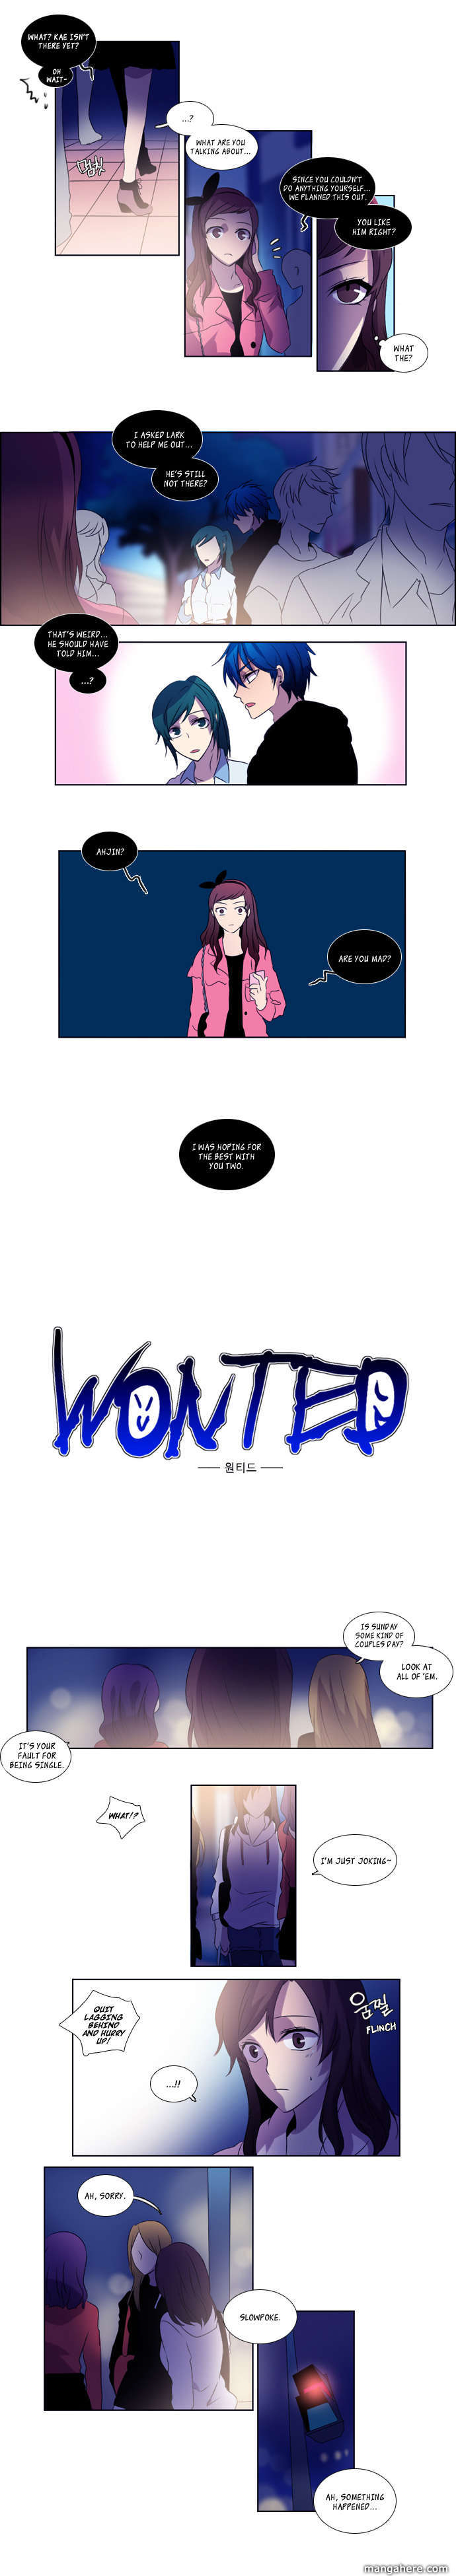 Wonted 14 Page 3